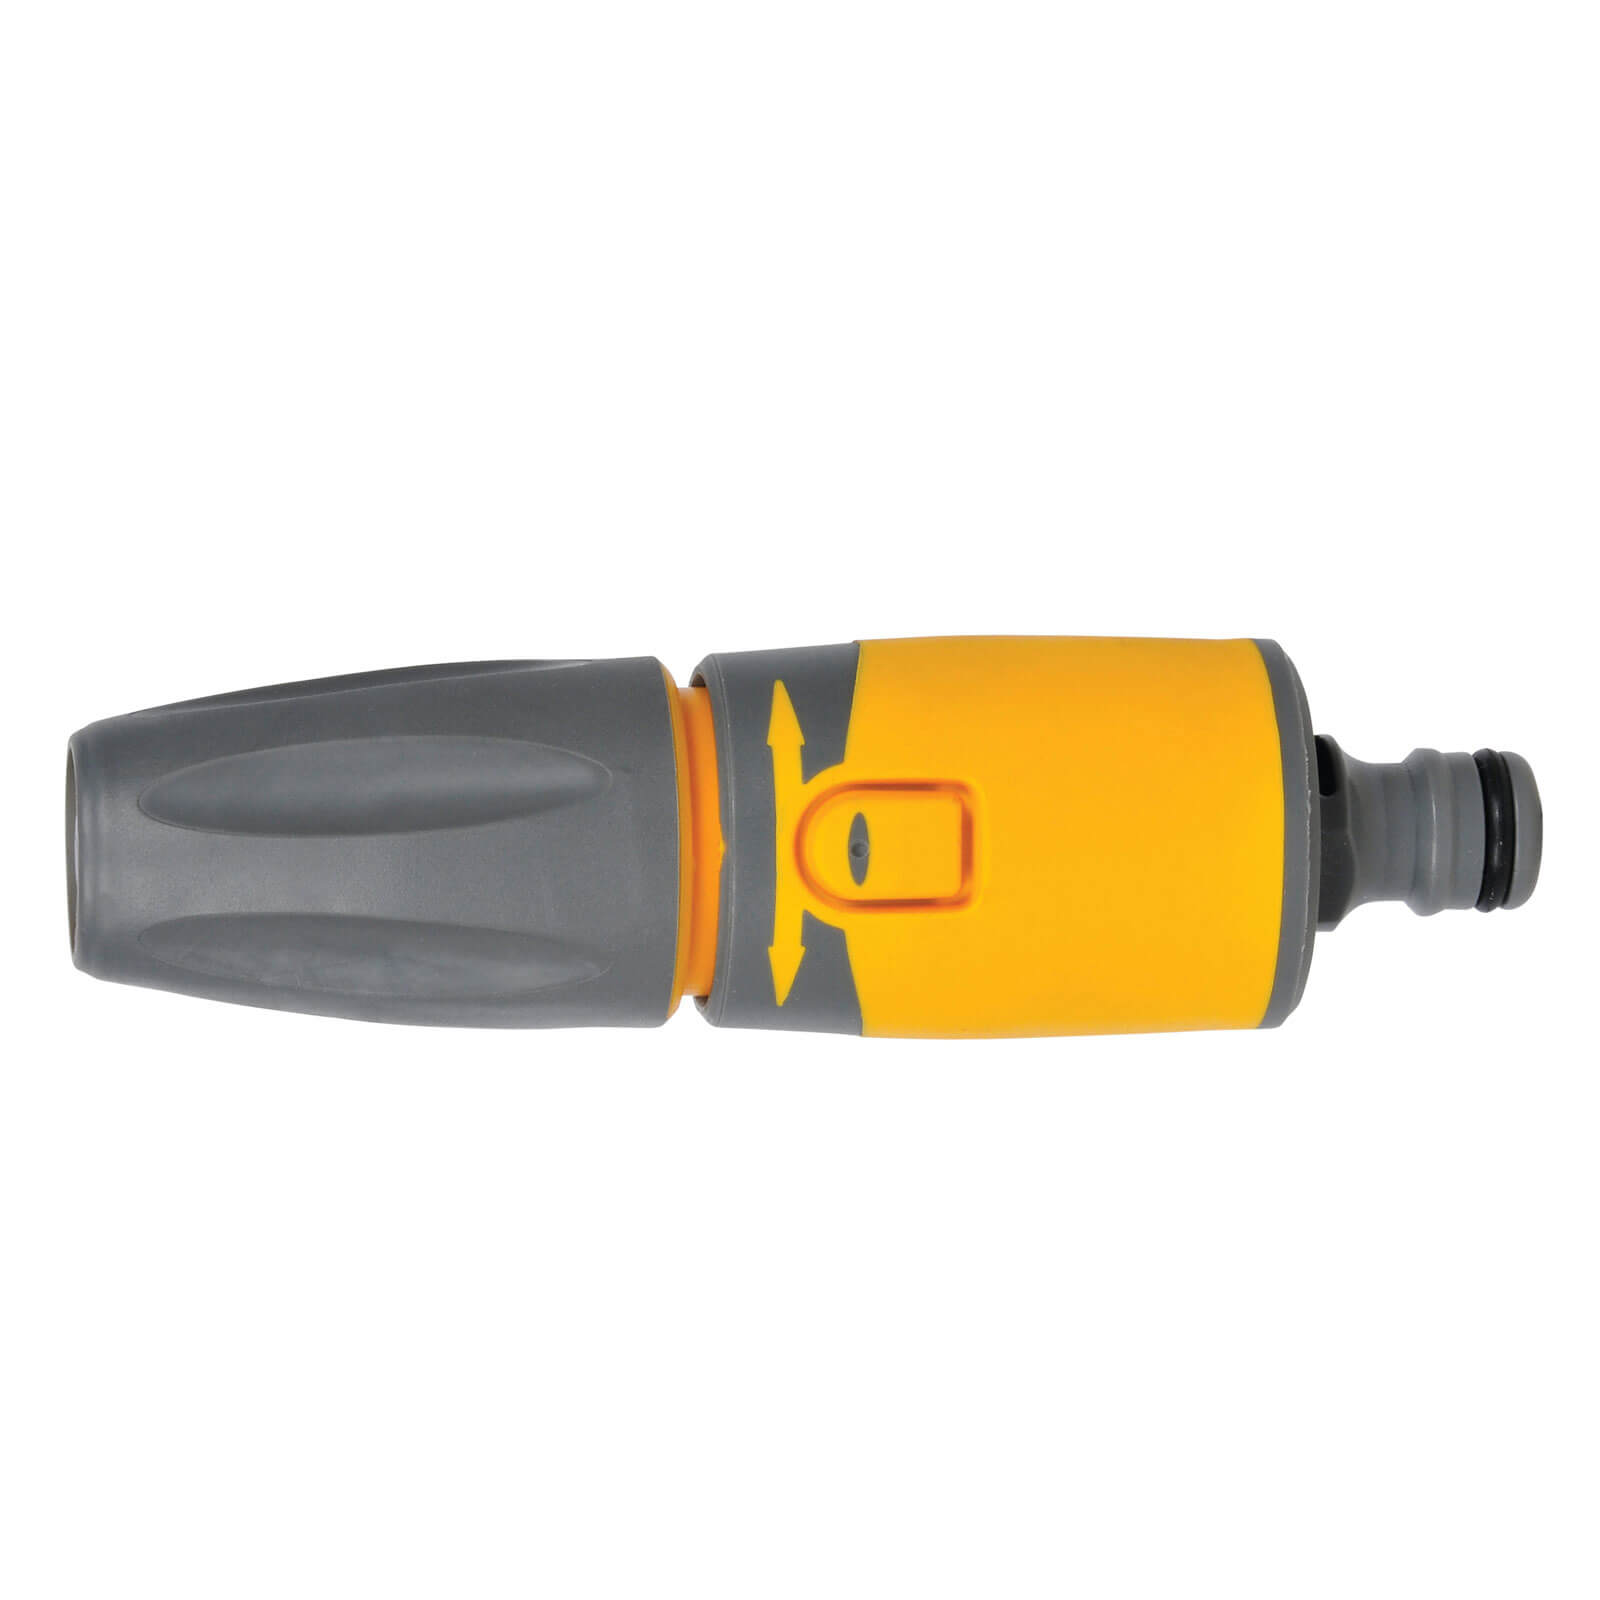 Hozelock Deluxe Water Spray Nozzle for Hose Pipes